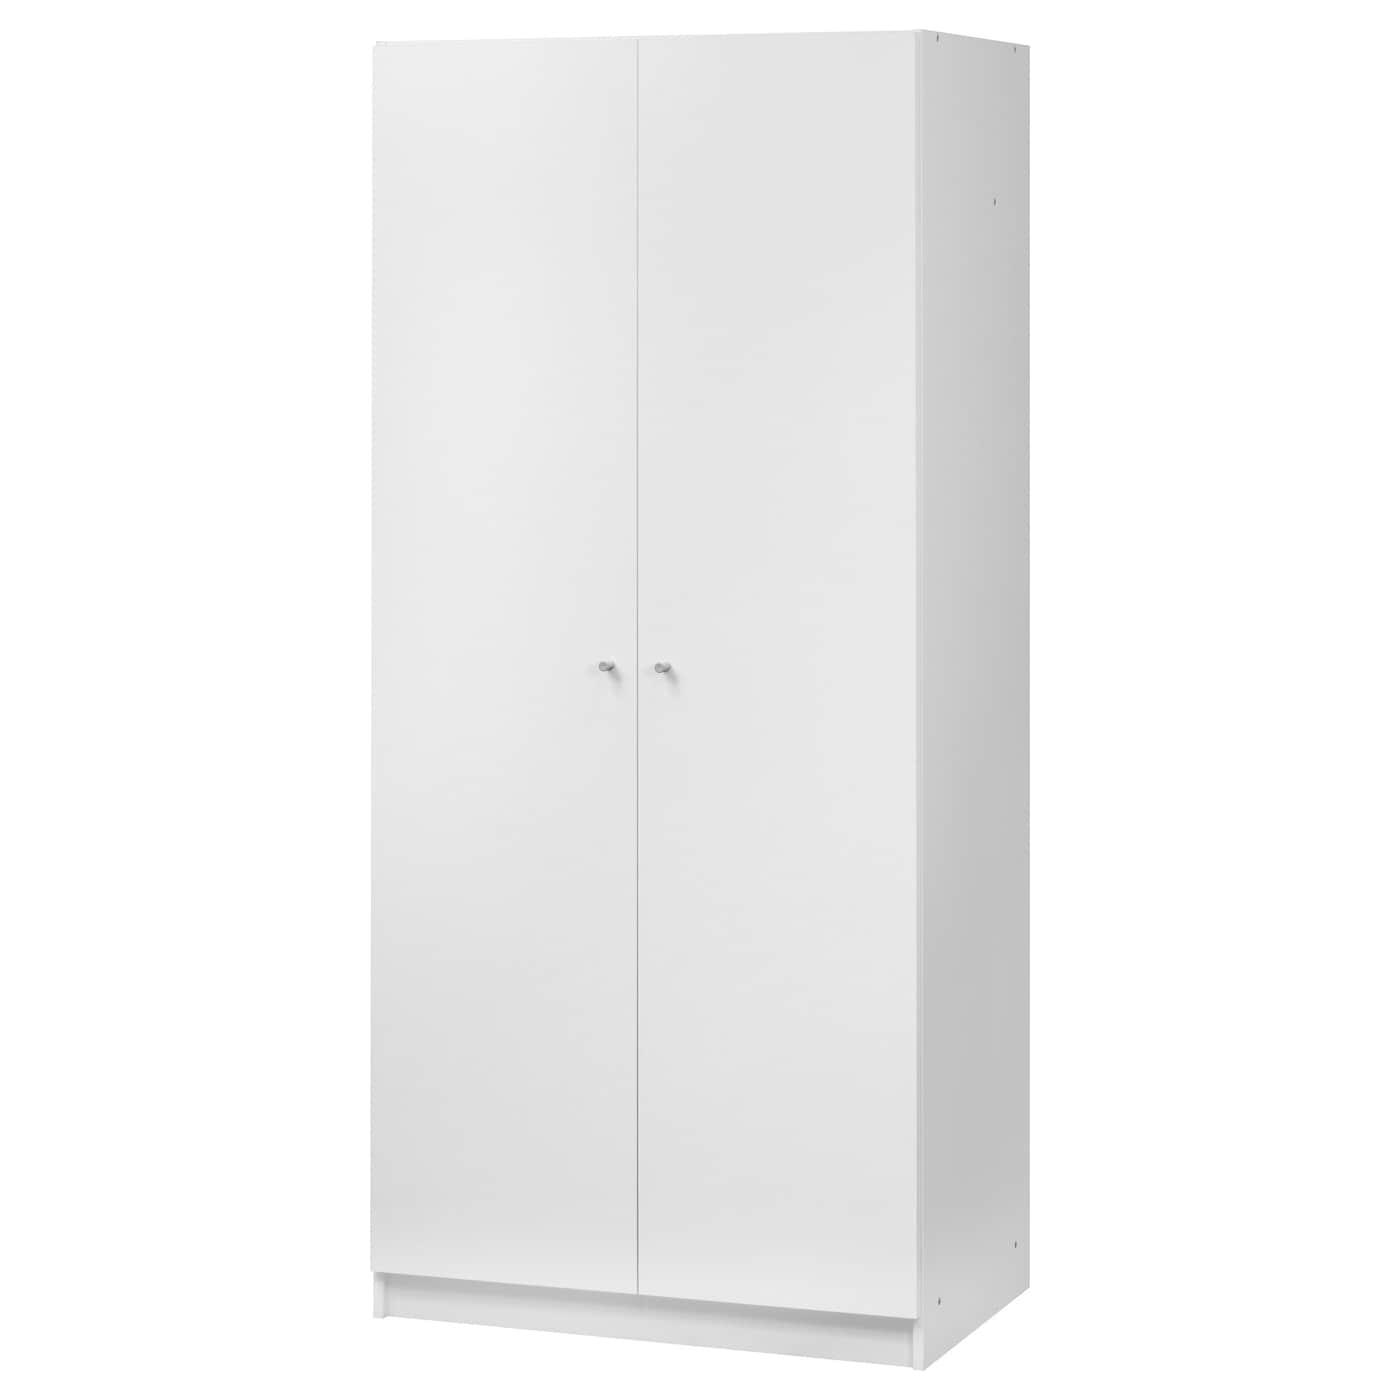 Bostrak wardrobe white 80x50x180 cm ikea for Schrank 220 hoch